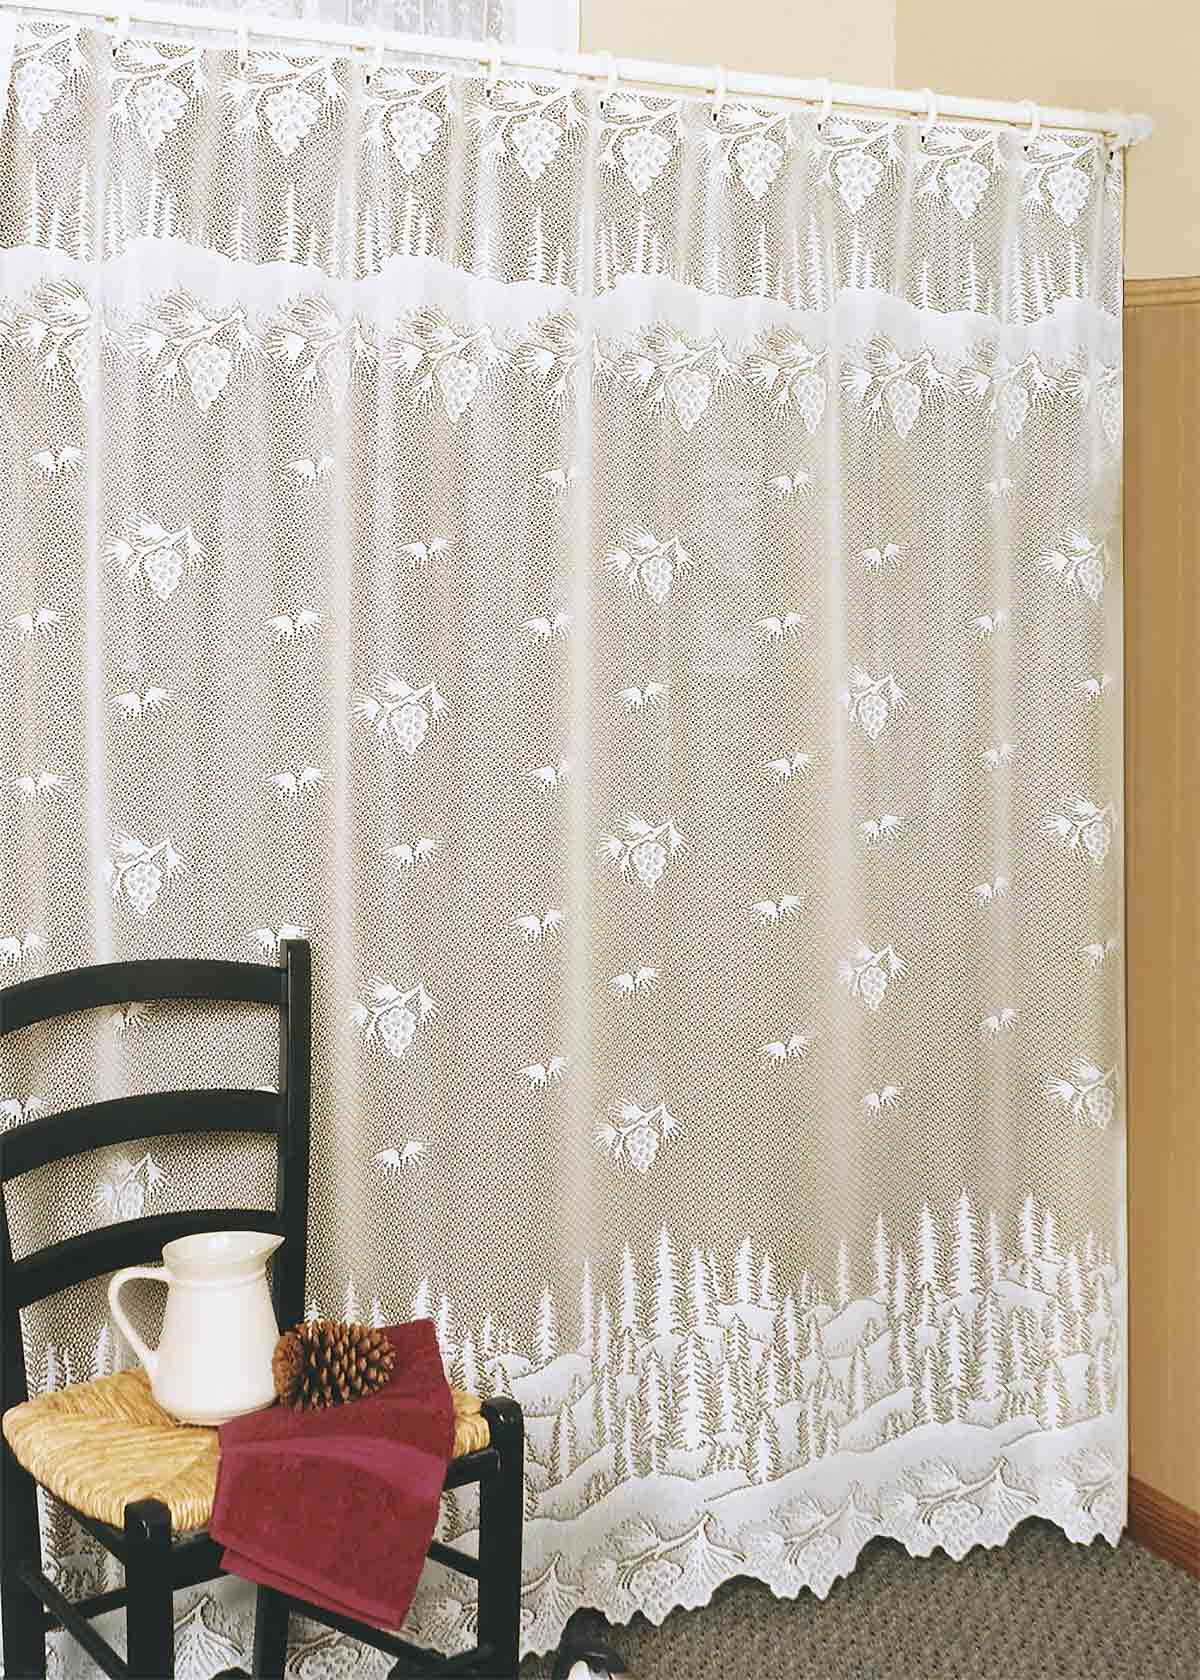 Lace Shower Curtains From Heritage Lace inside measurements 1200 X 1680